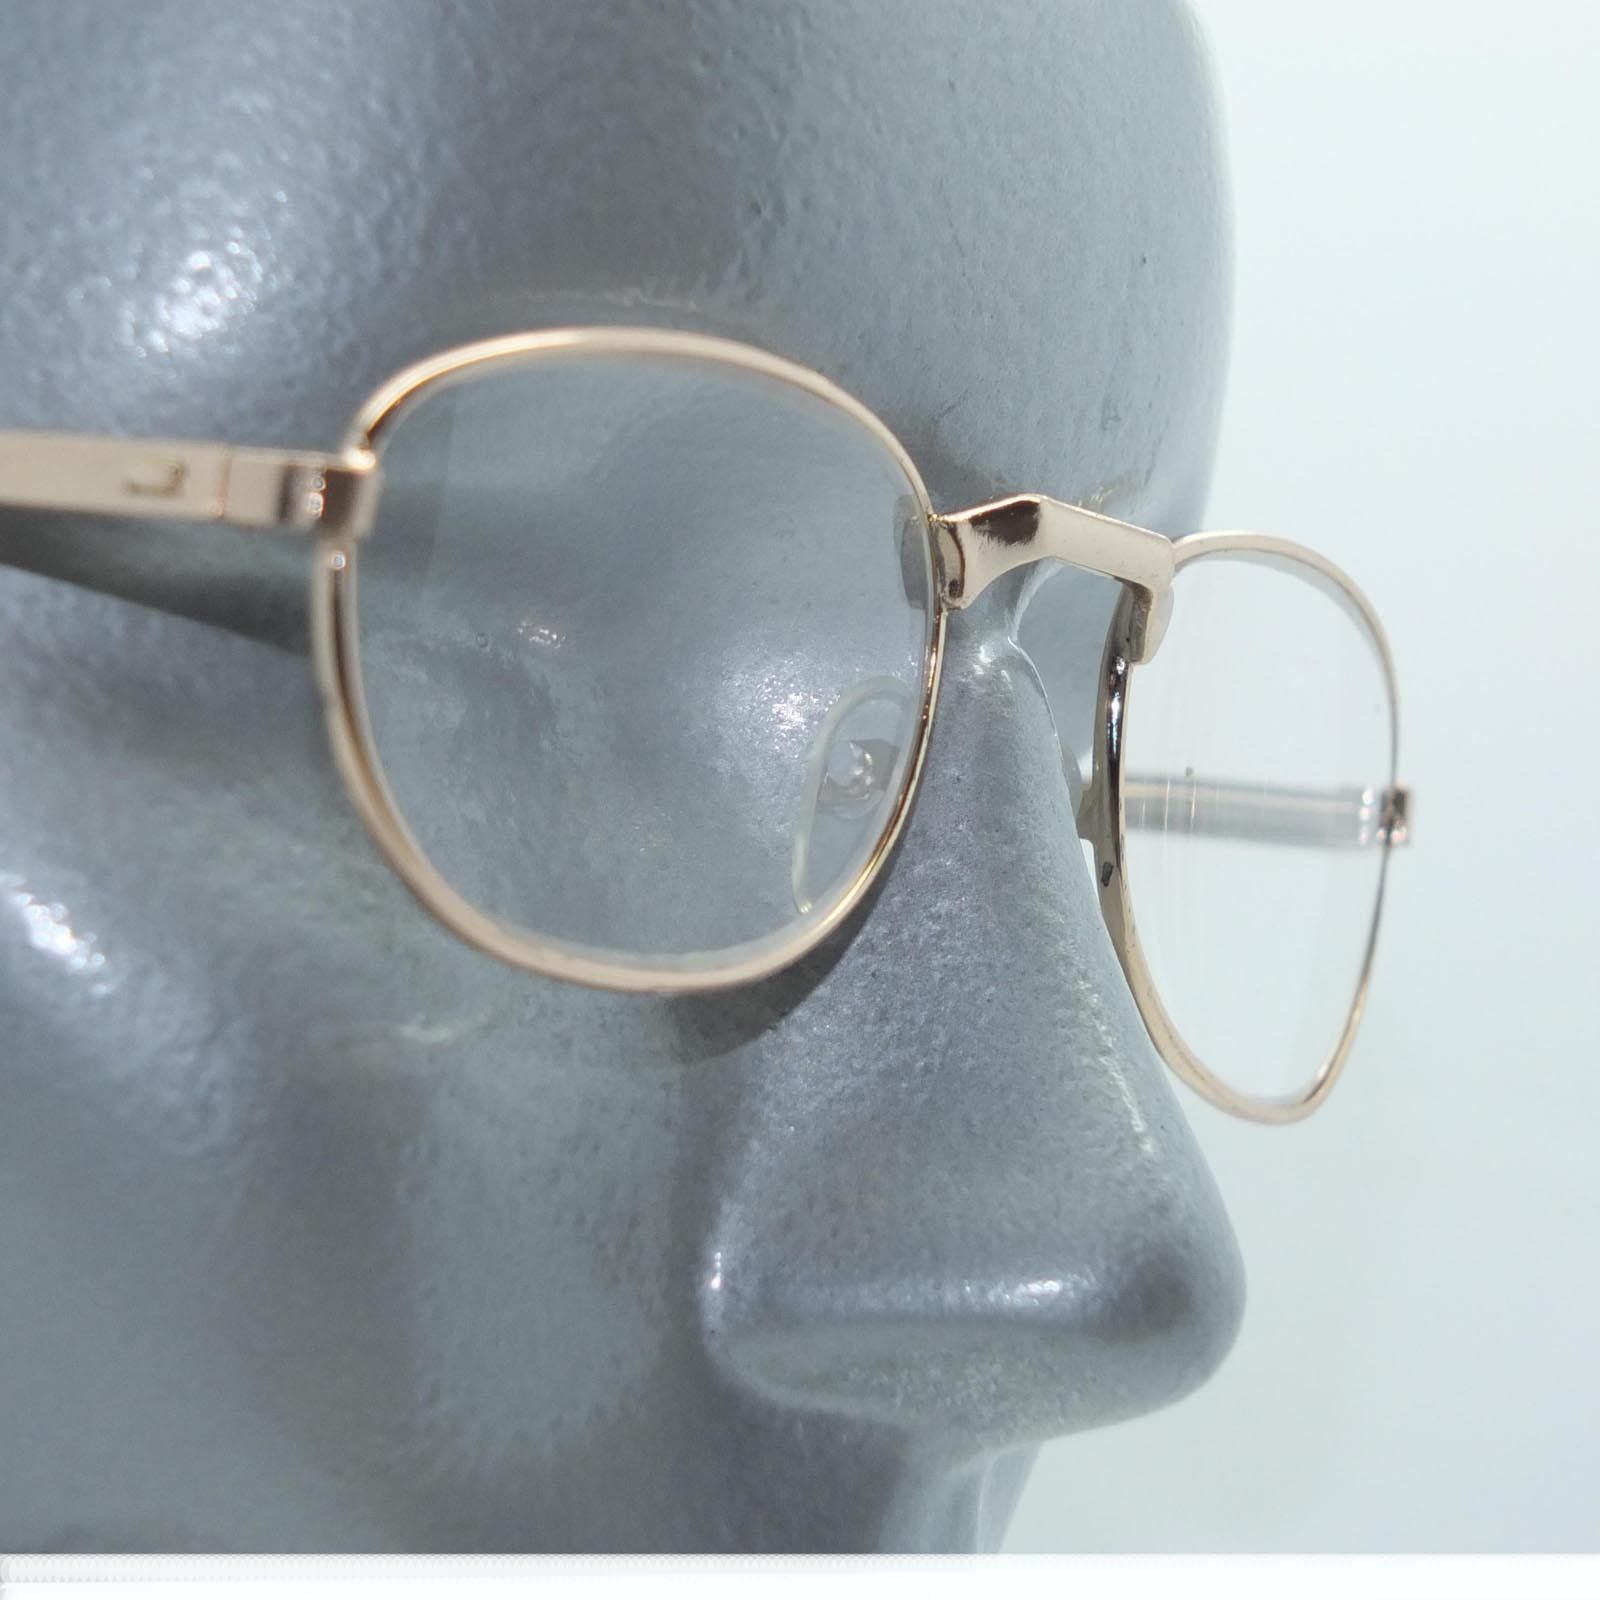 74744f03cd0 S l1600. S l1600. Previous. Petite Oval Style Angle Bridge Reading Glasses  Gold Metal Frame +2.50 Lens